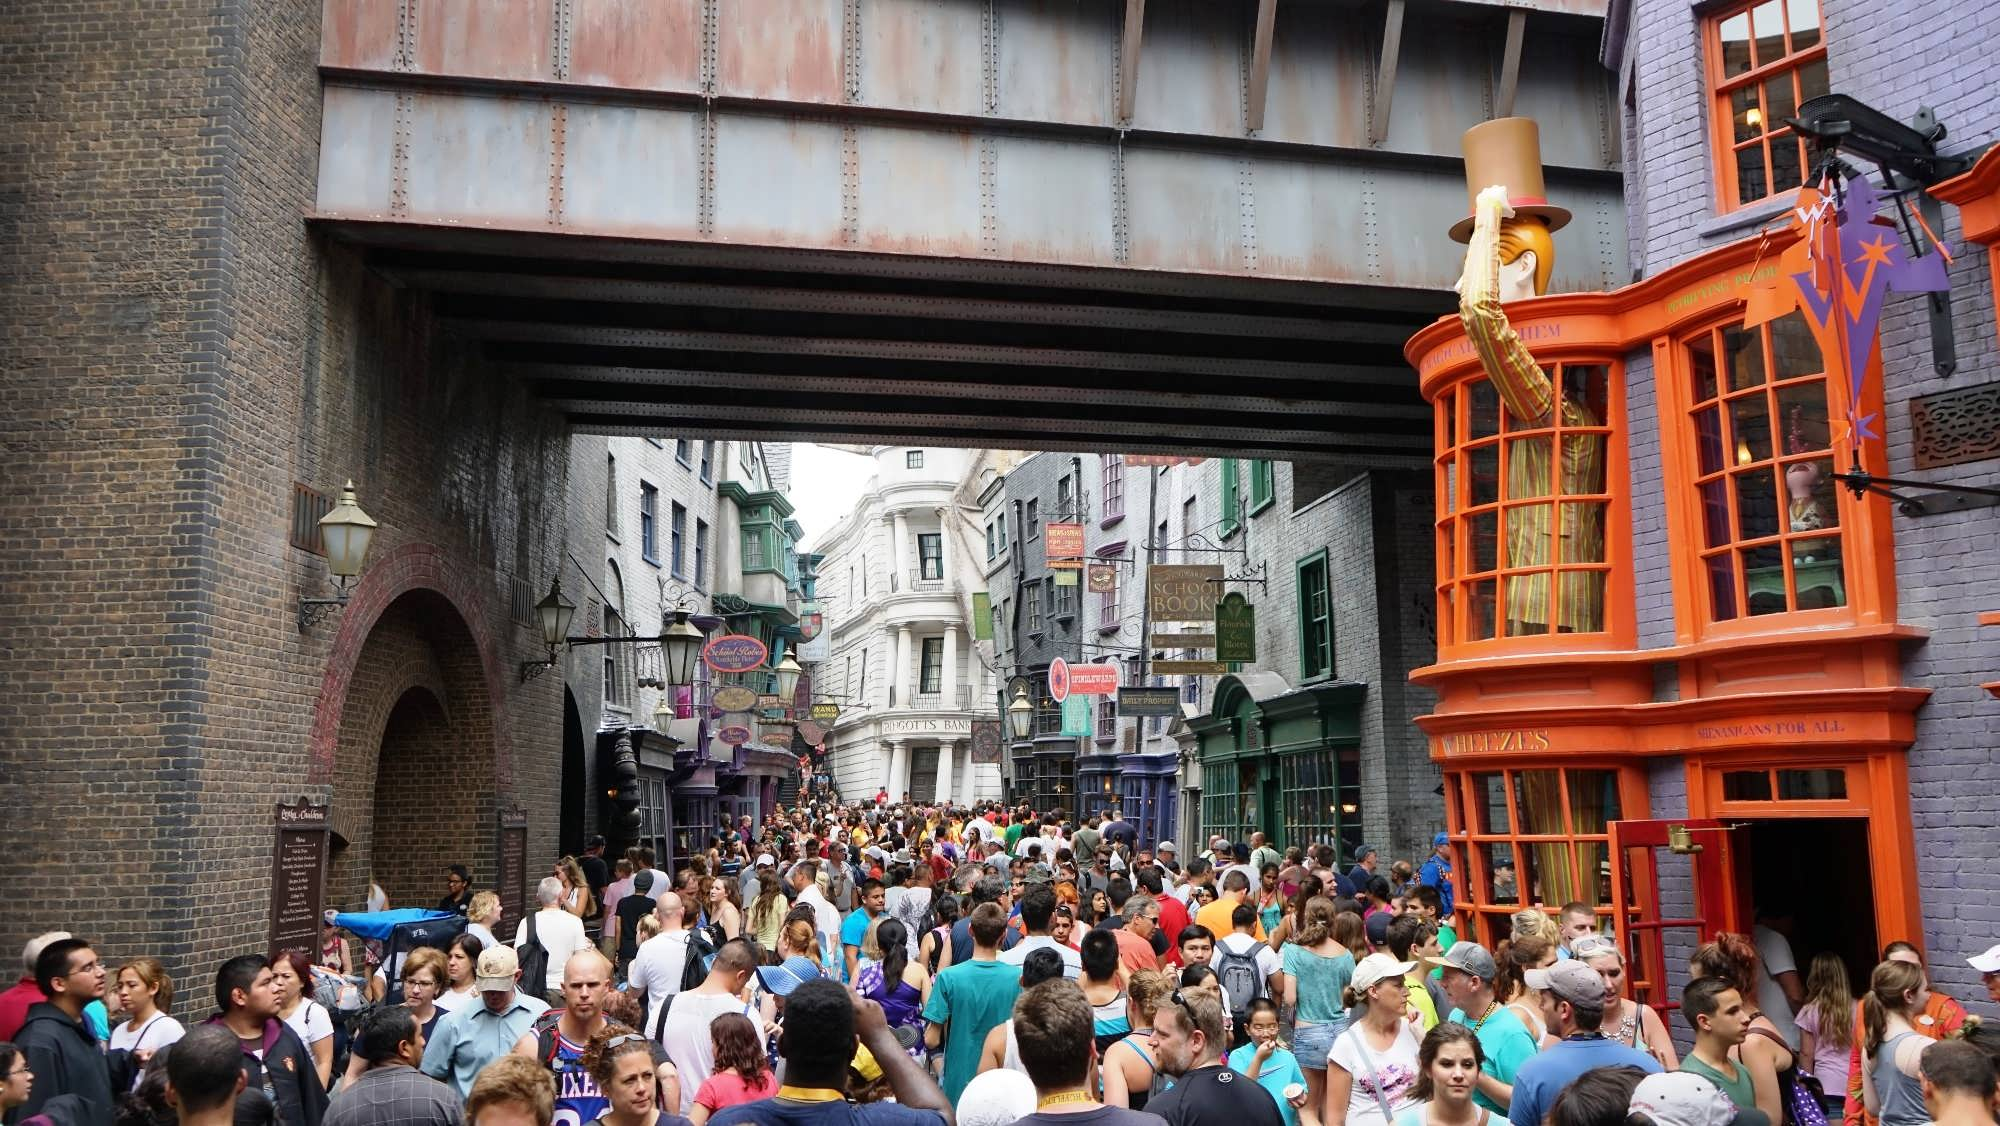 Crowds inside The Wizarding World of Harry Potter – Diagon Alley